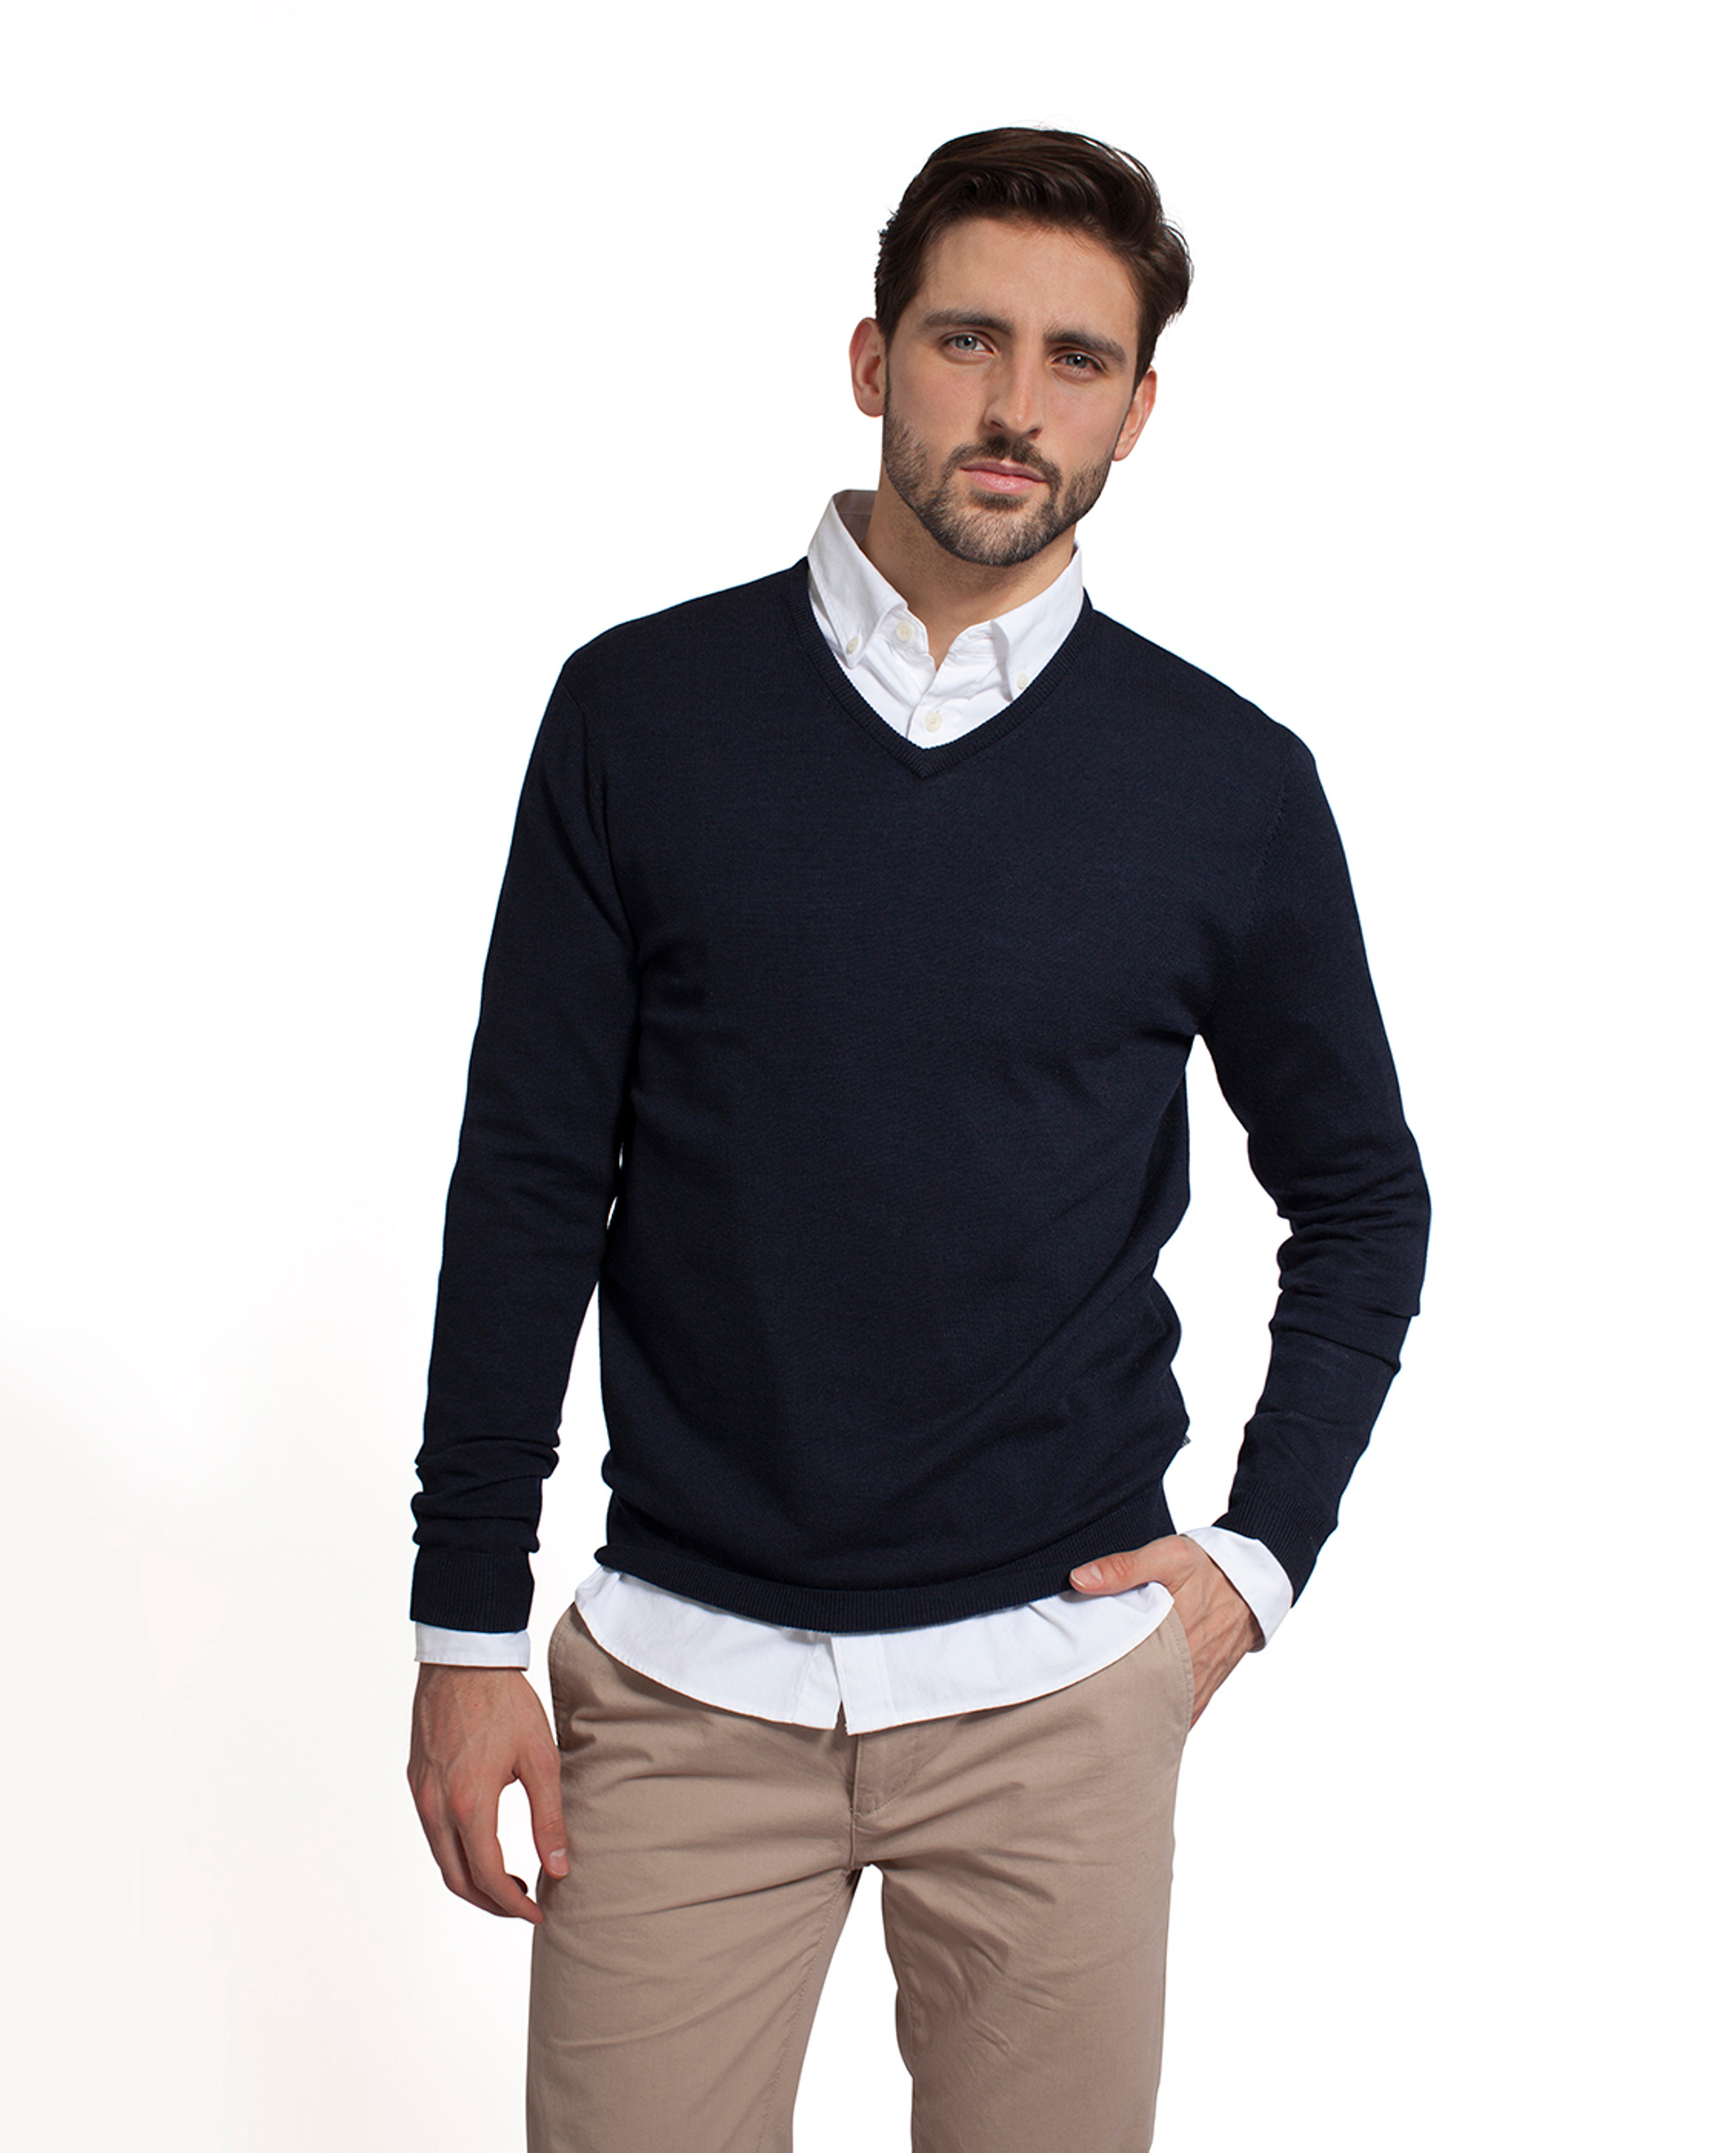 How To Wear Collared Shirt Under V Neck Sweater